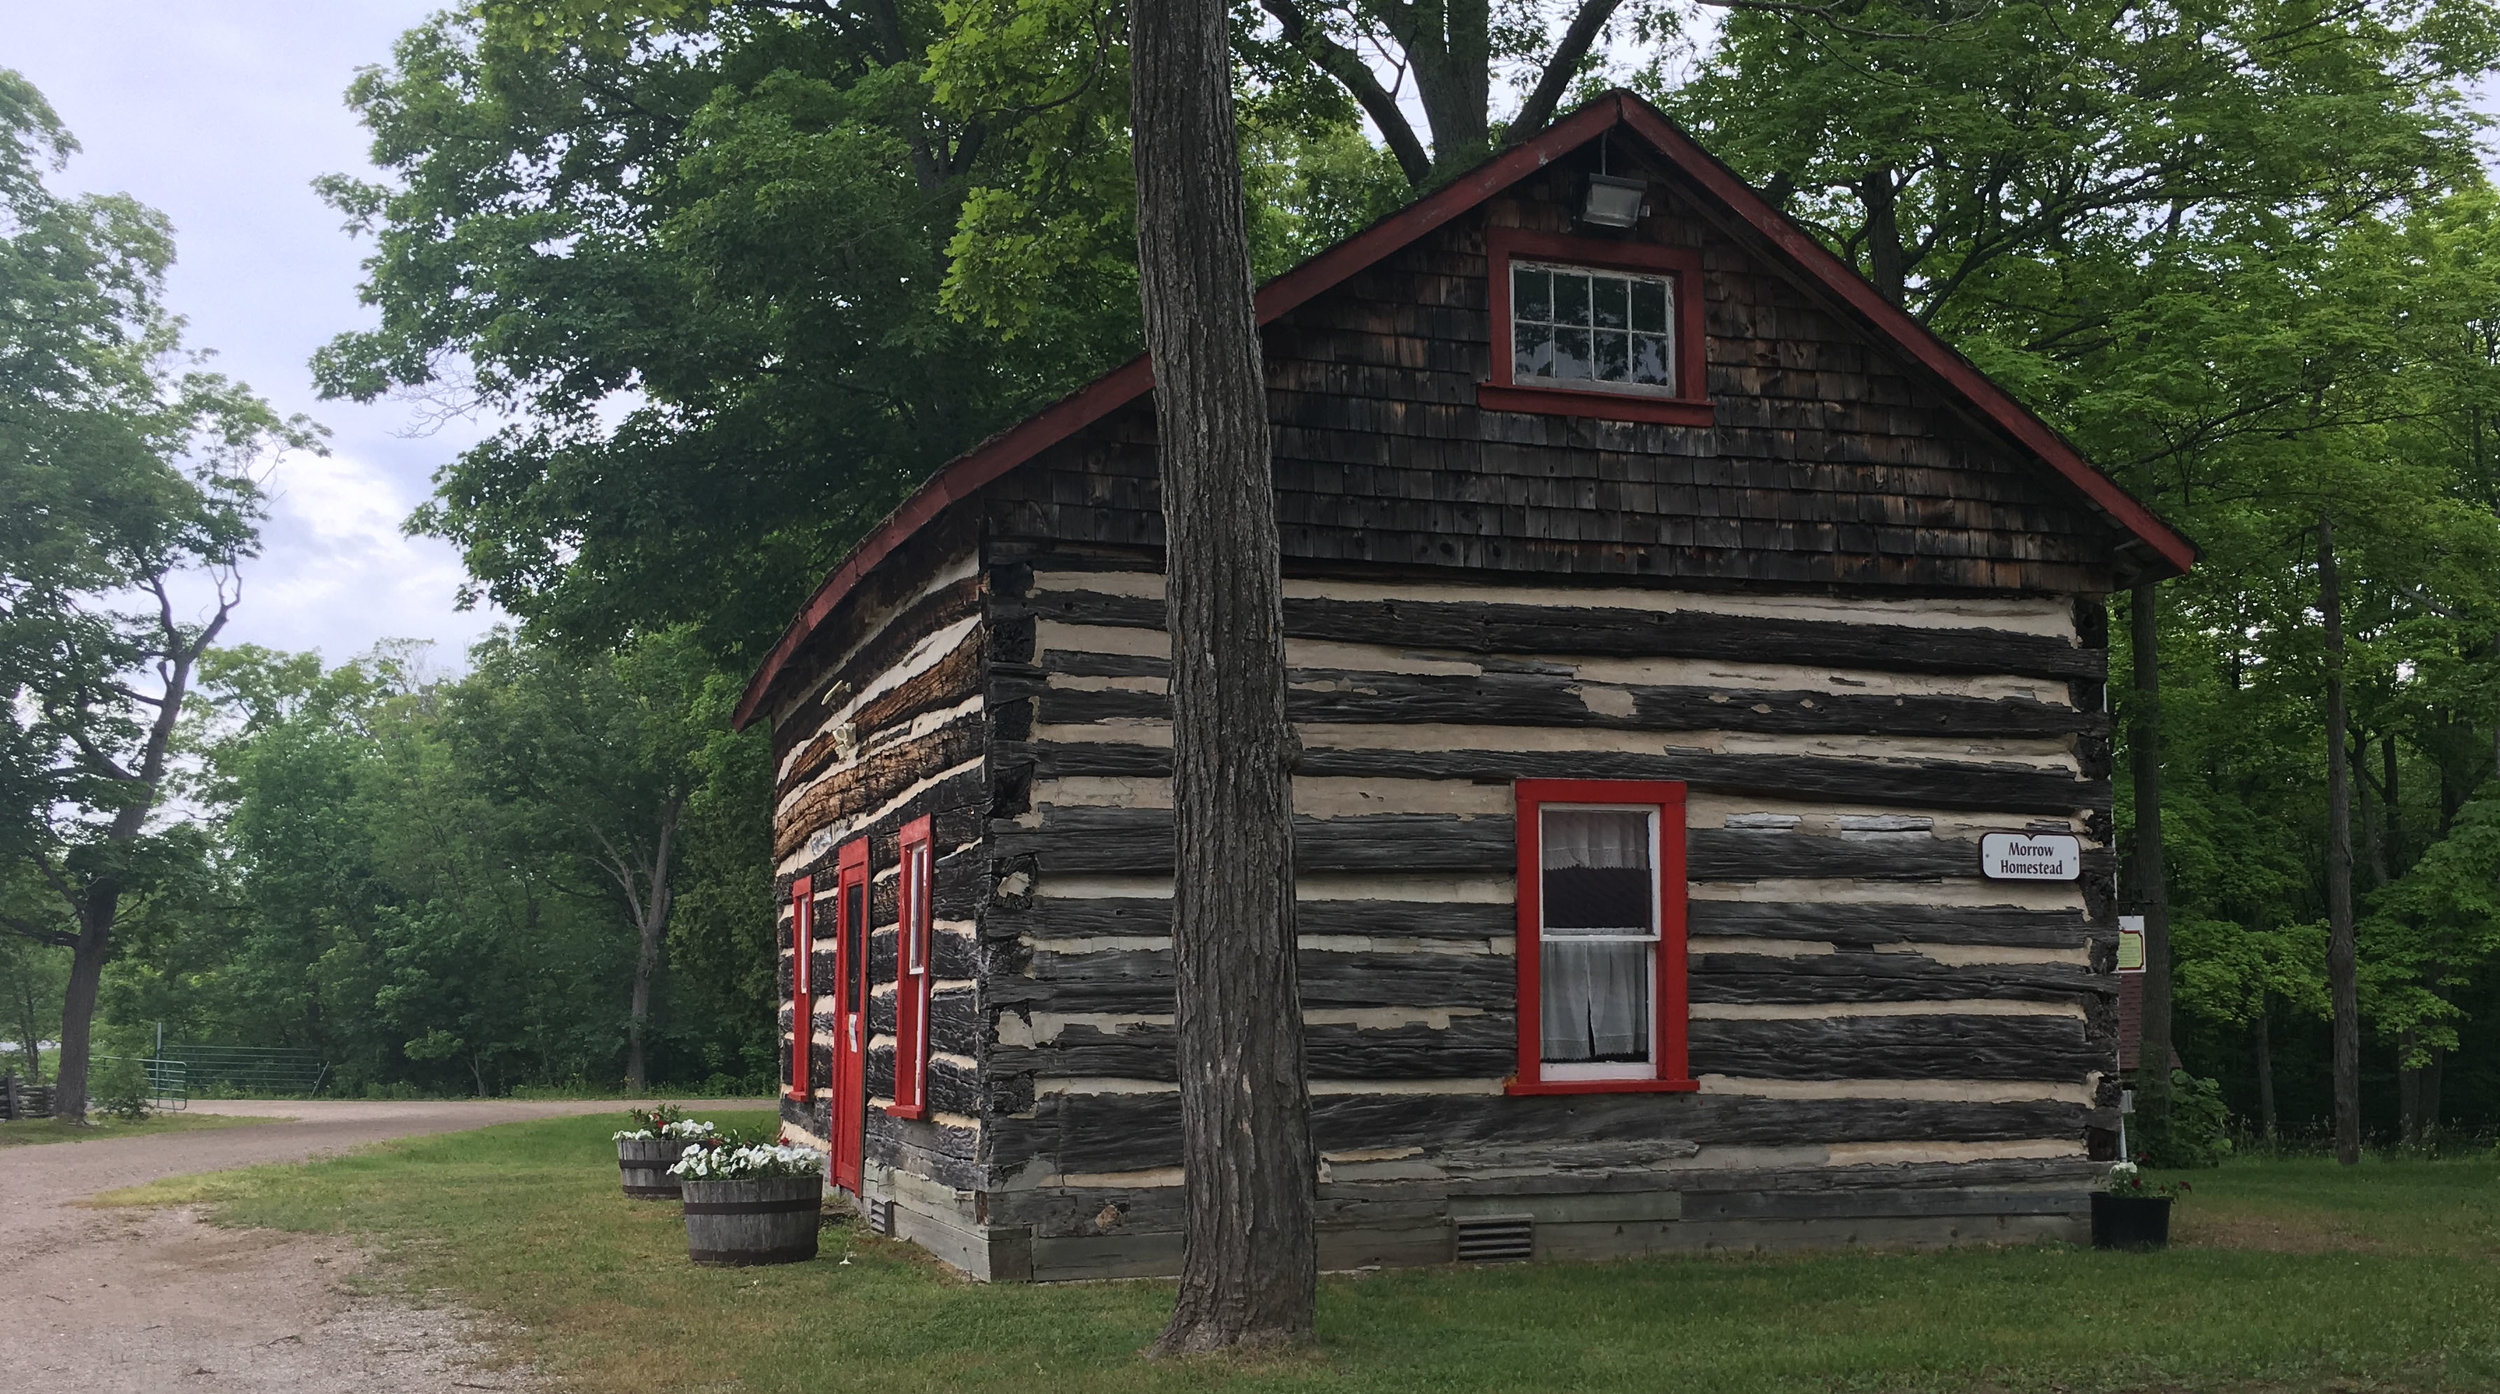 One of the buildings at the museum